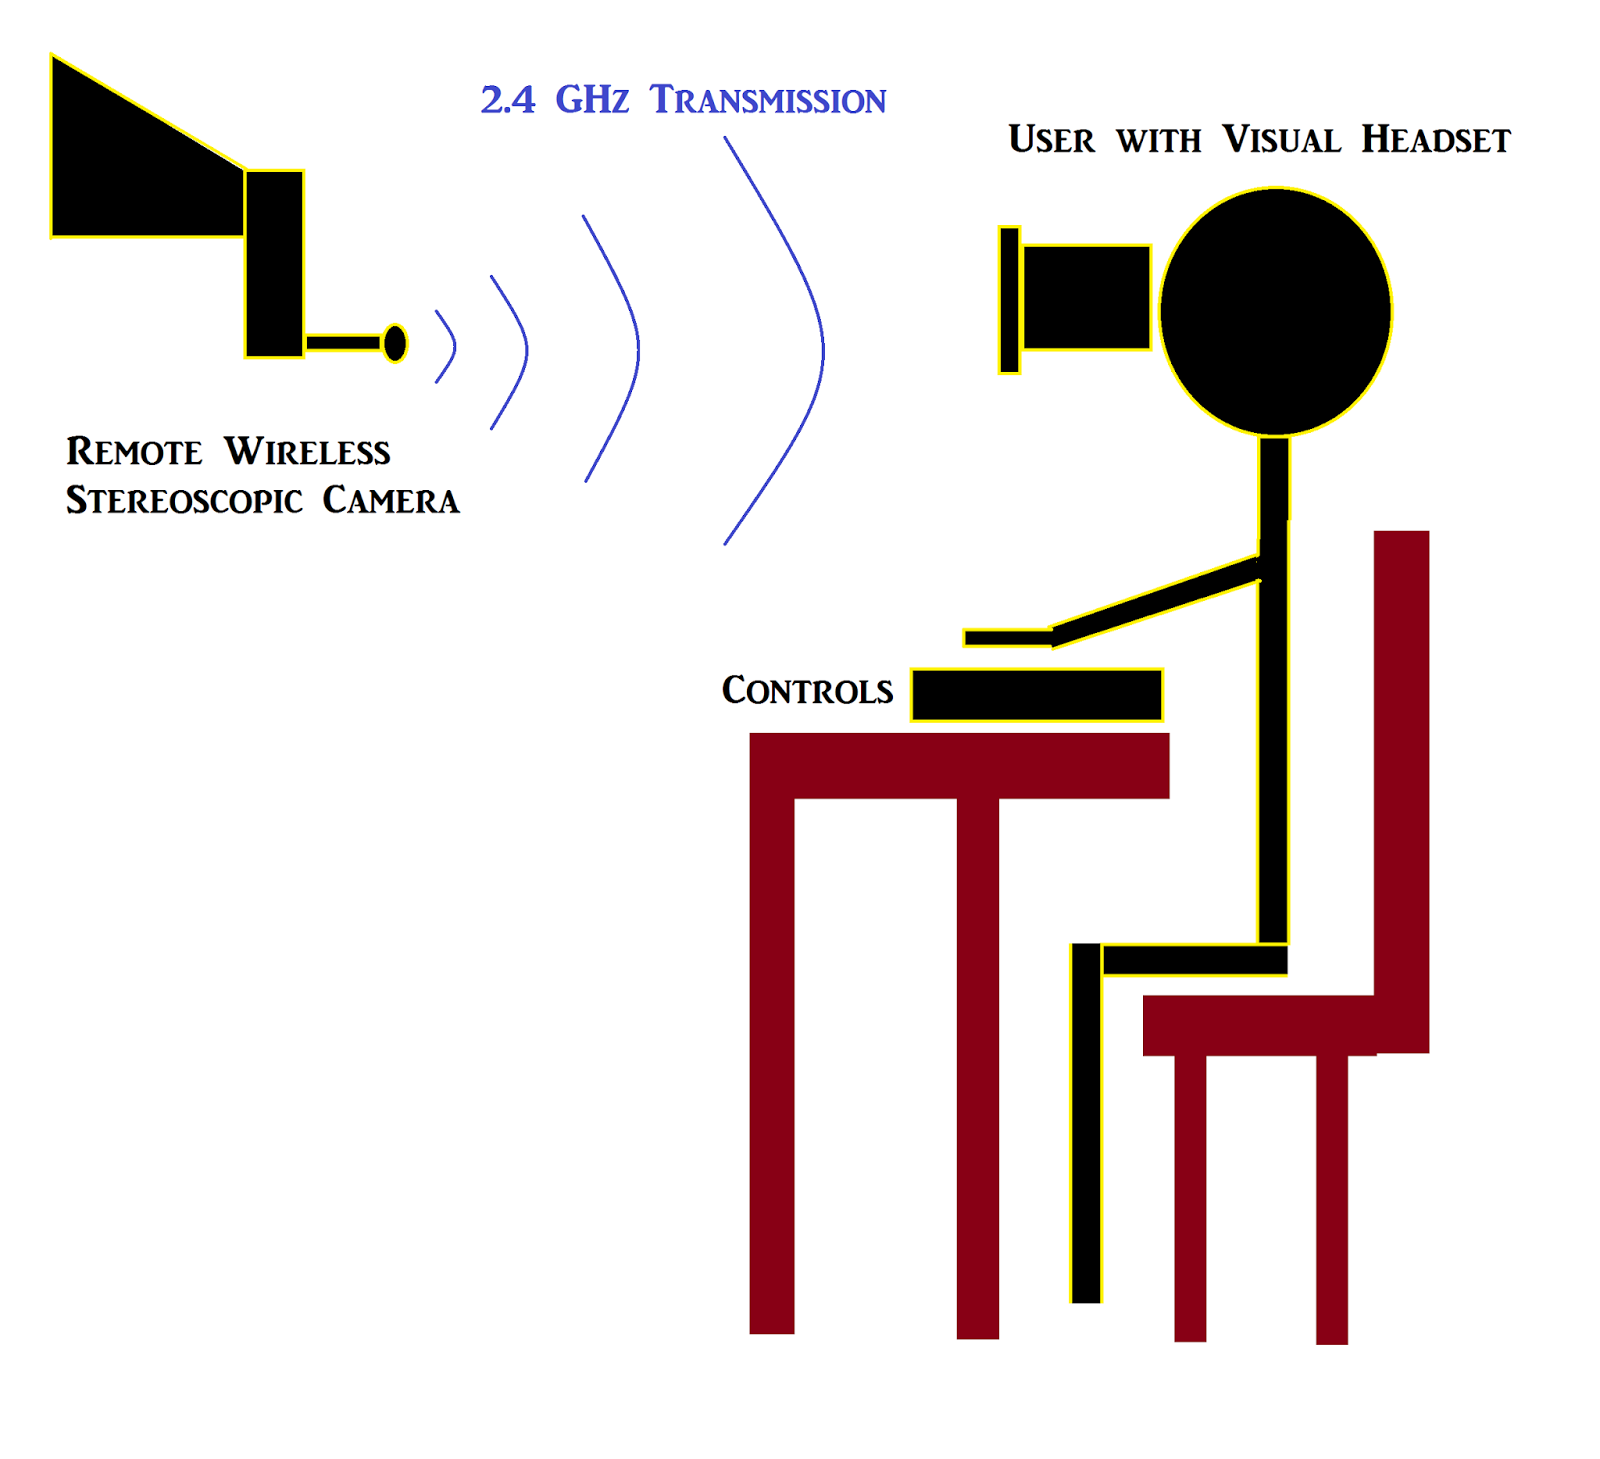 Muonray Remote Augmented Reality And Virtual Vision Enhancements Wireless Camera Diagram The Therefore Is Designed To Be Stereoscopic Record Sense Of Depth Consists A Split Screen Mount For